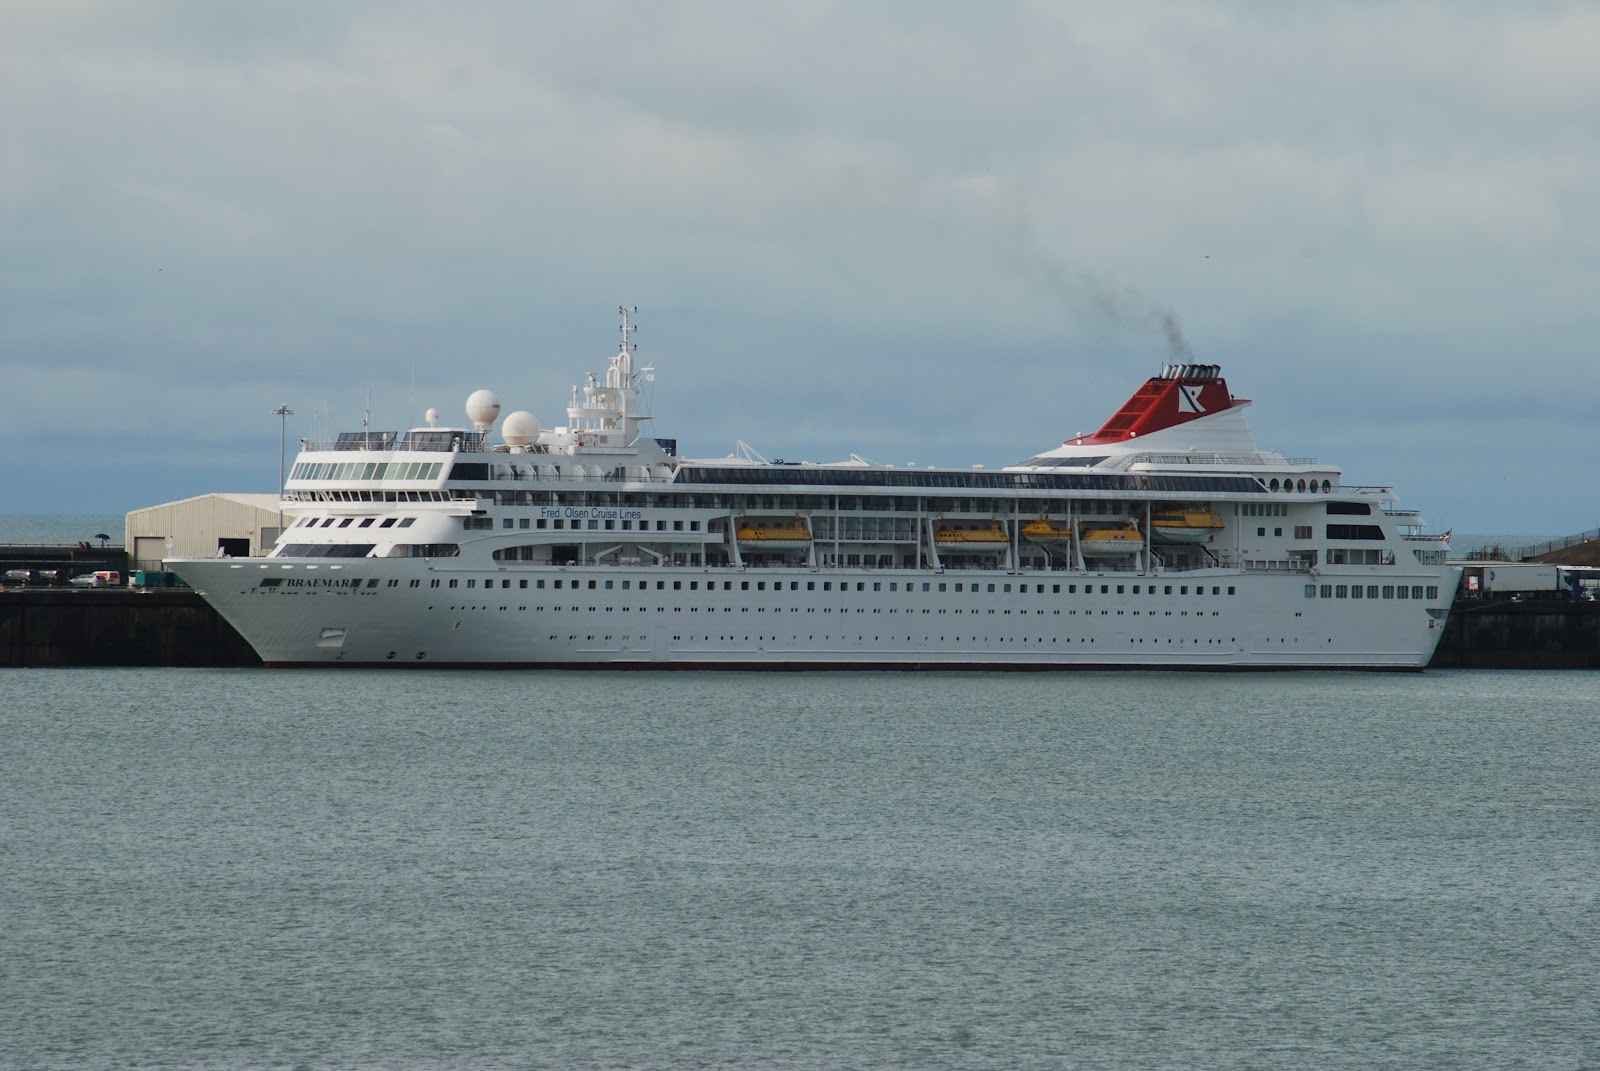 NAVIGATIONCruising And Maritime Themes Cruise Ship QuotBRAEMARquot